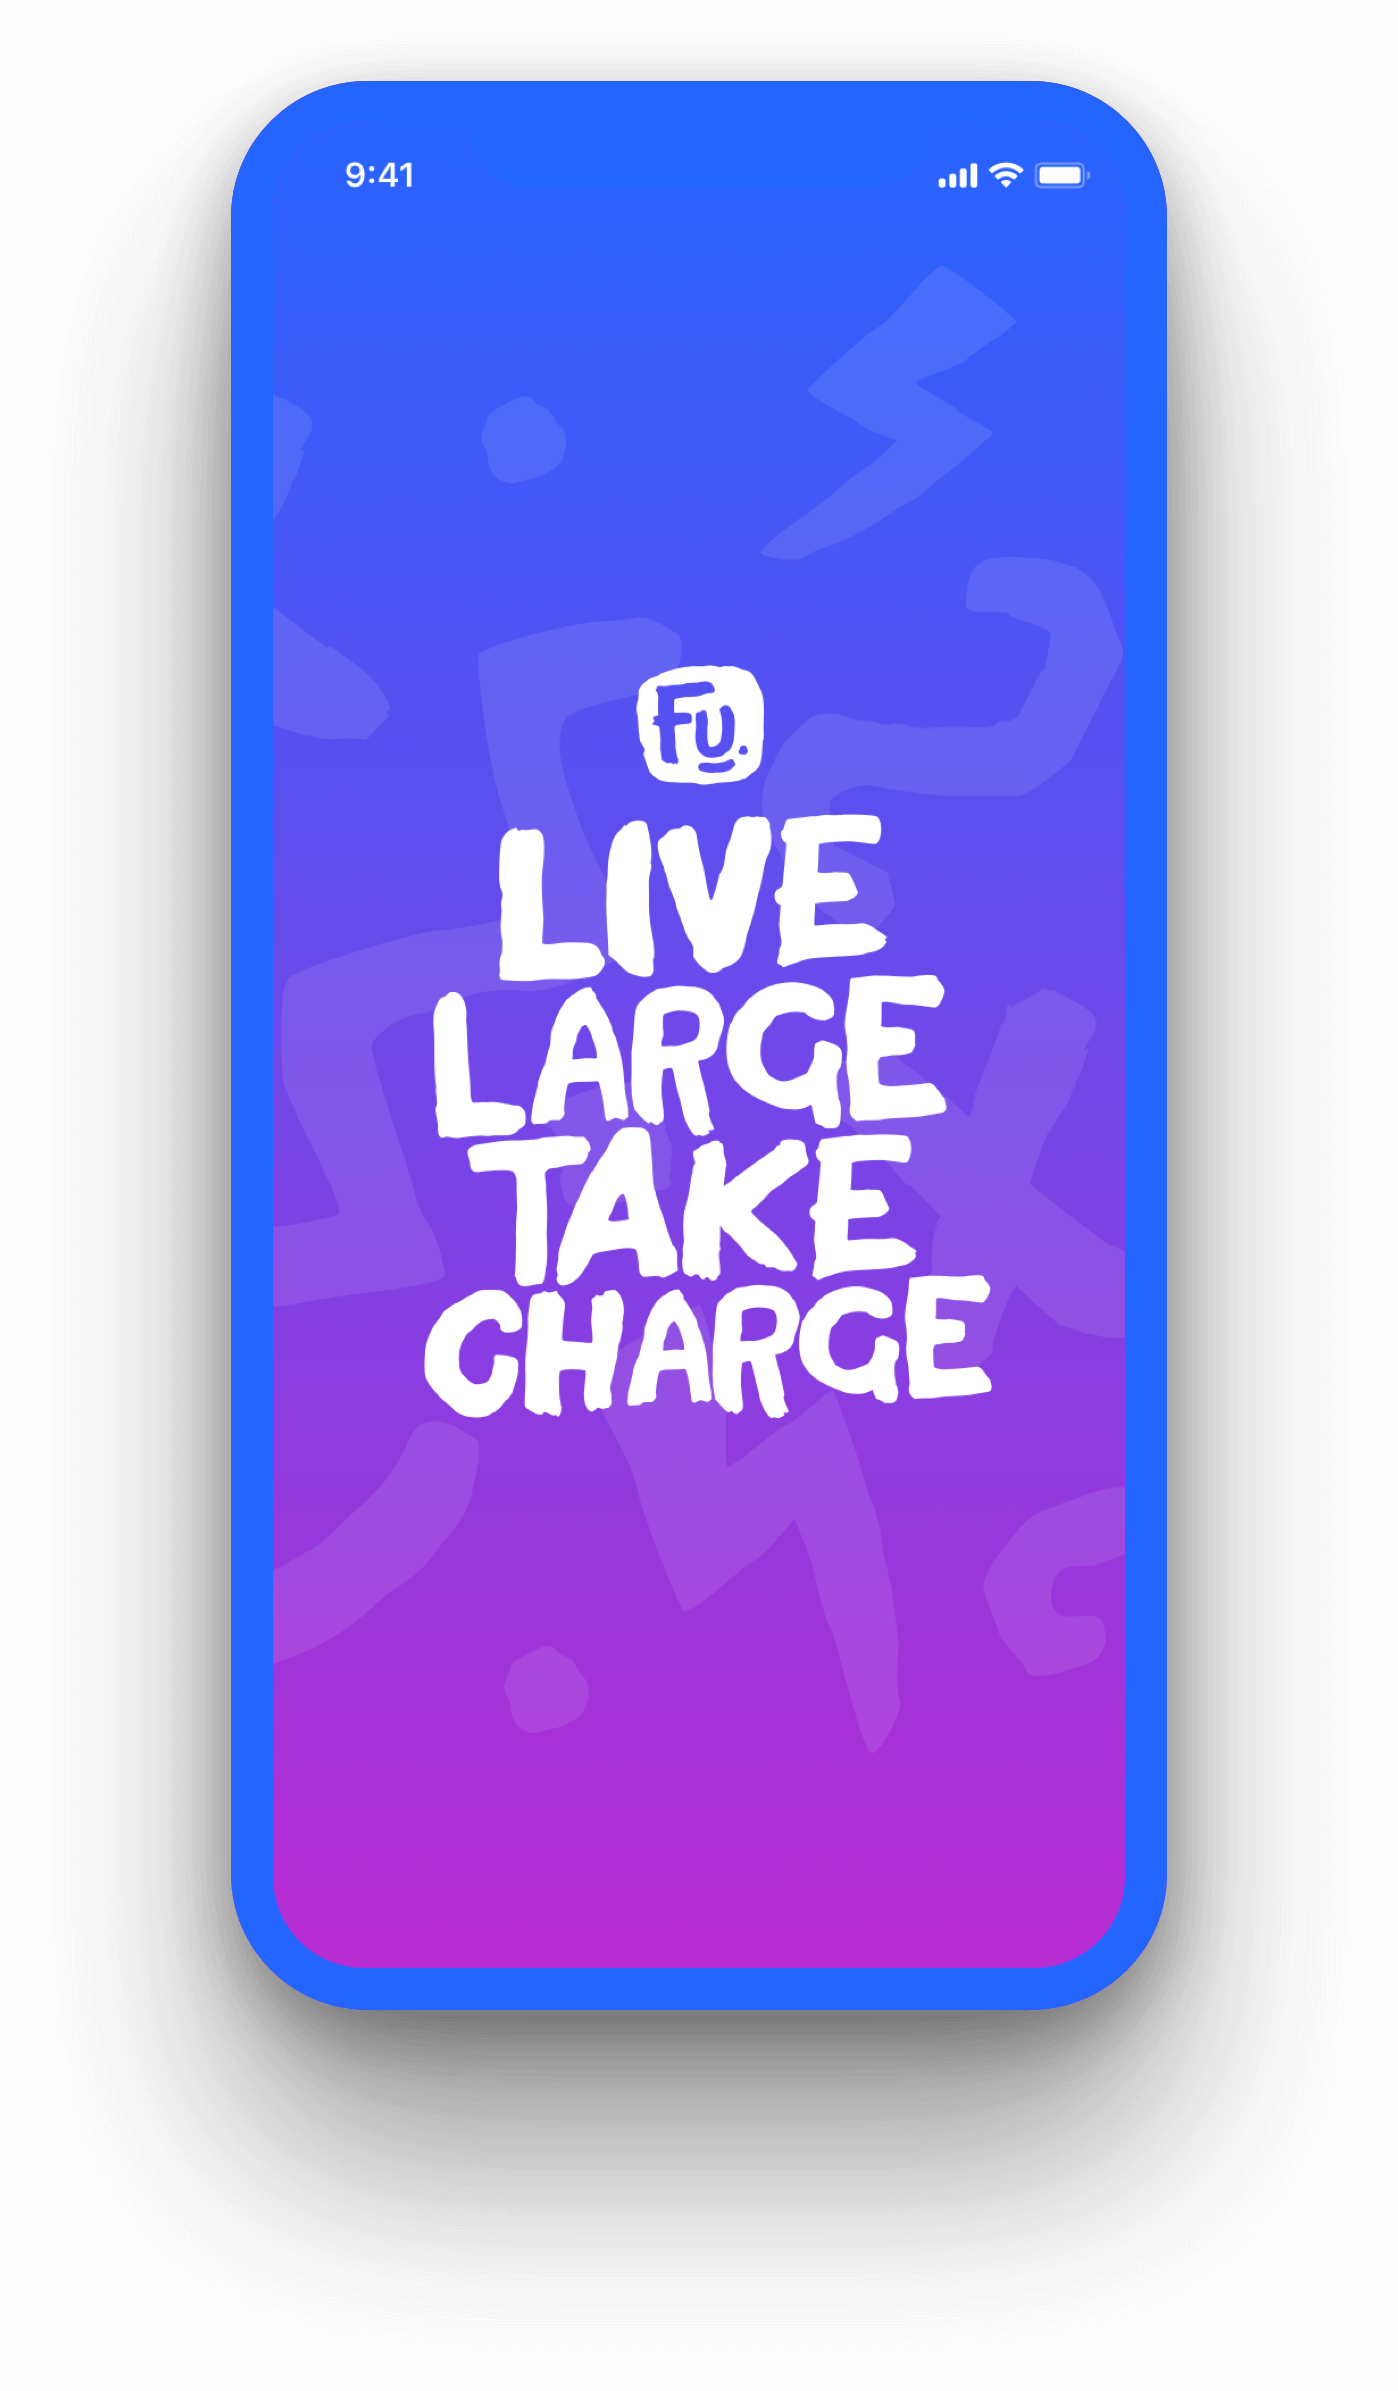 Live Large Take Charge